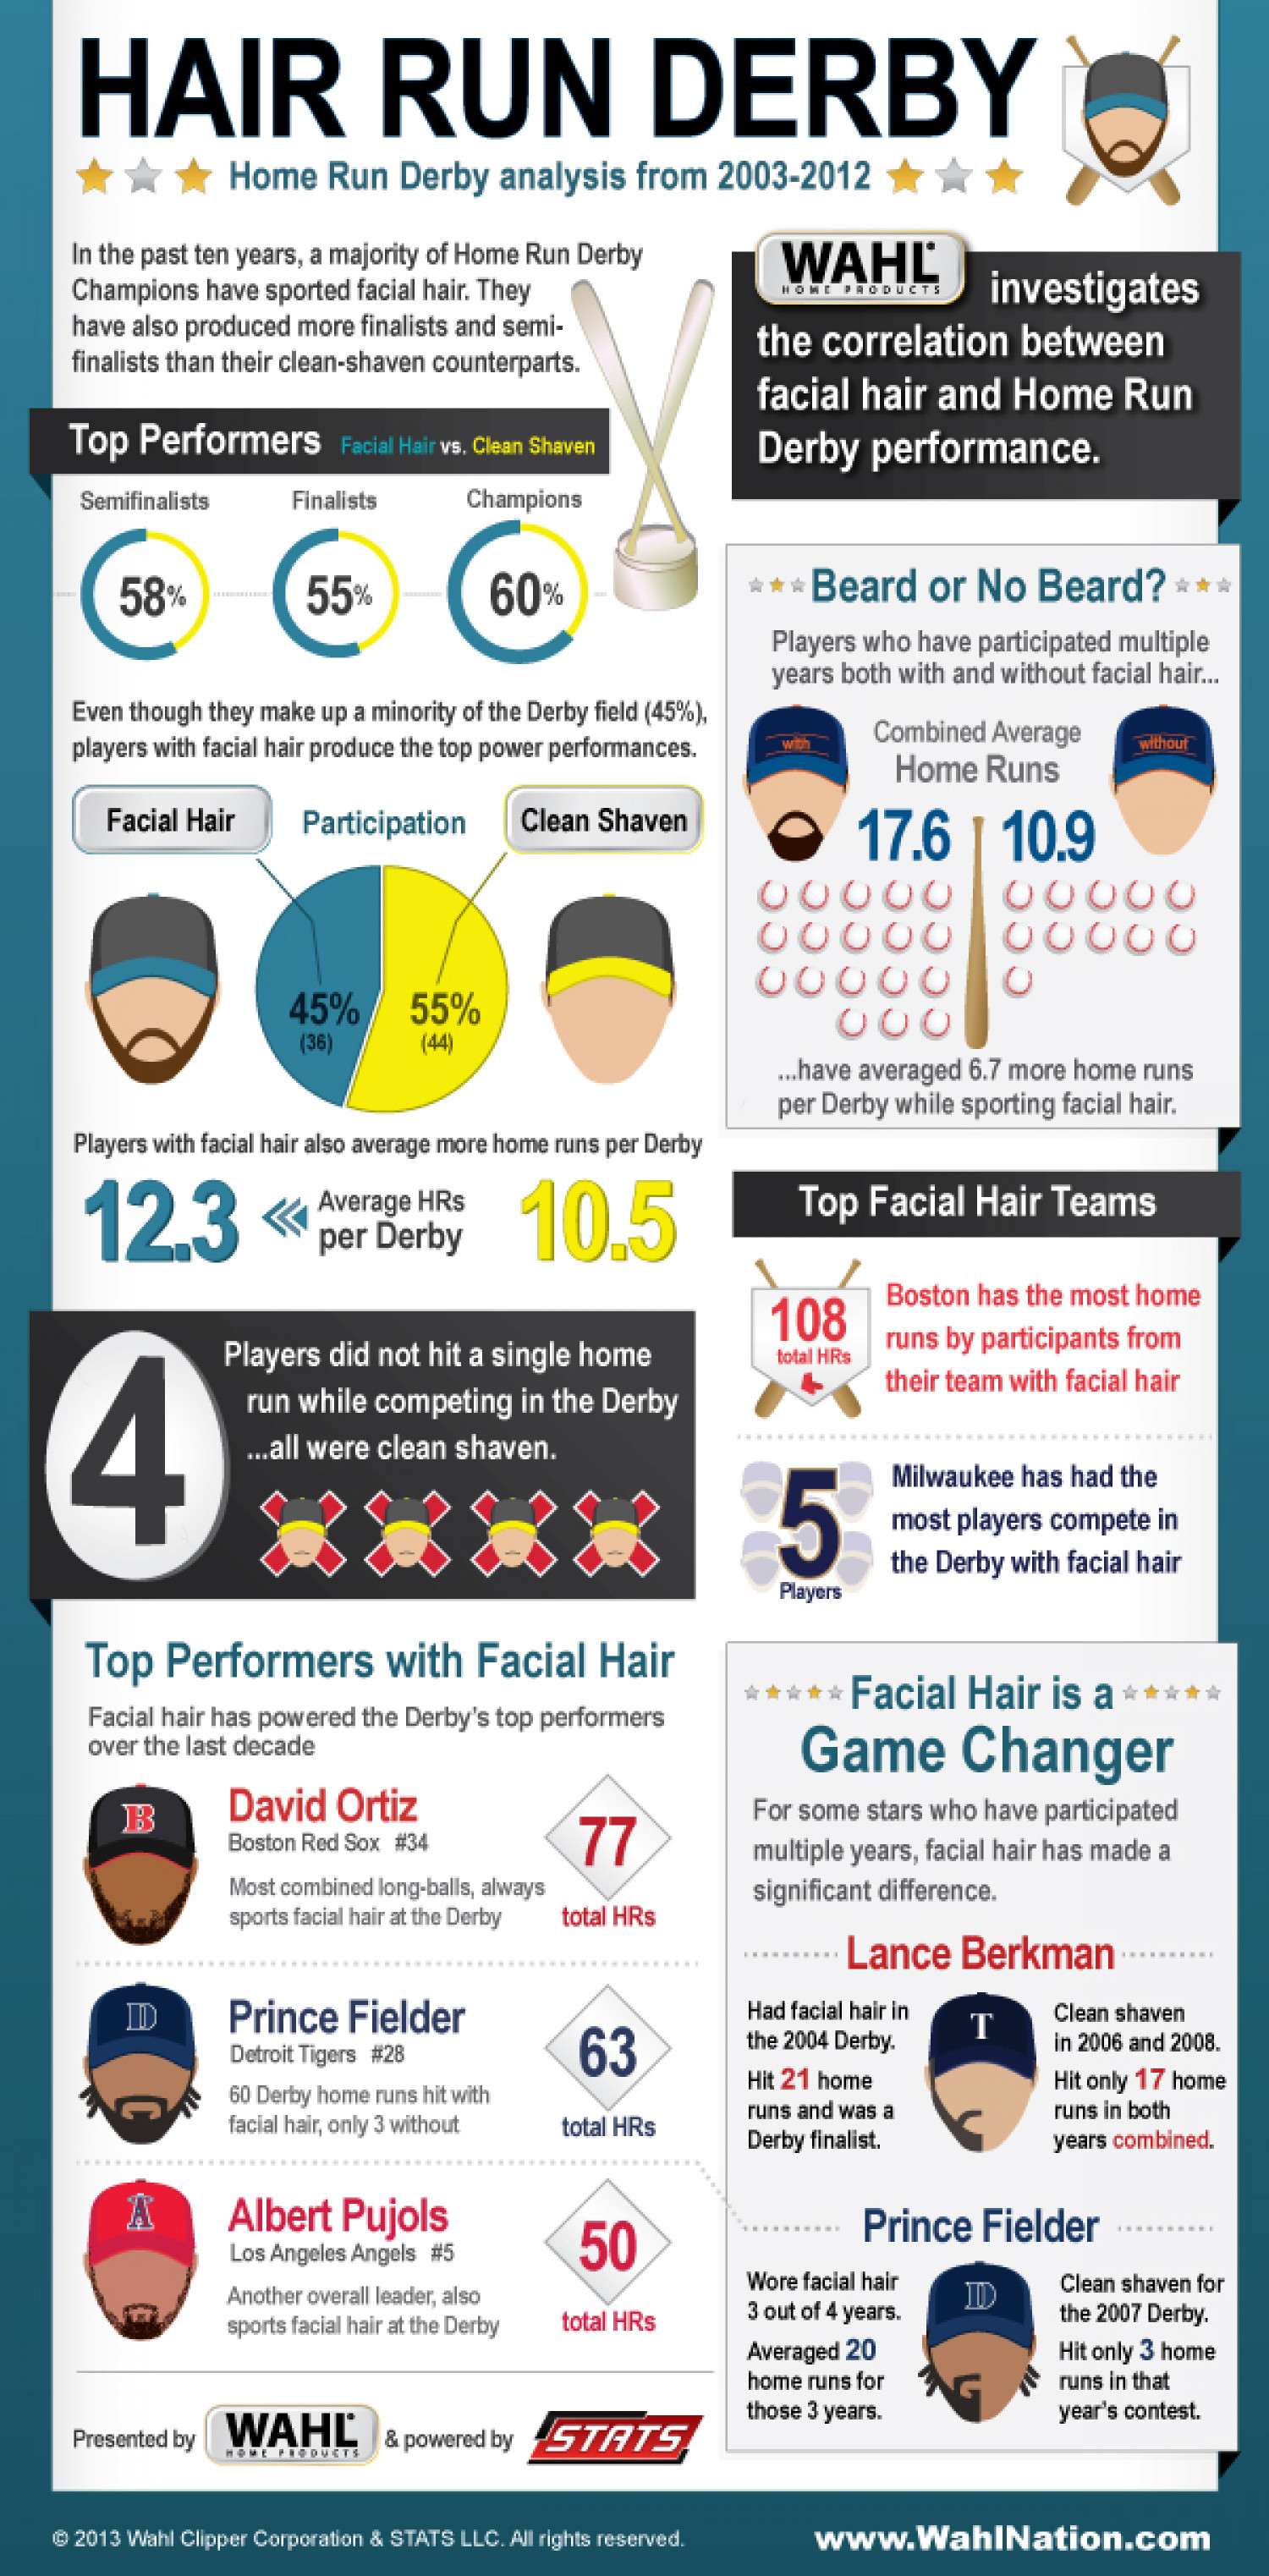 Hair Run Derby #WAHLStars Infographic